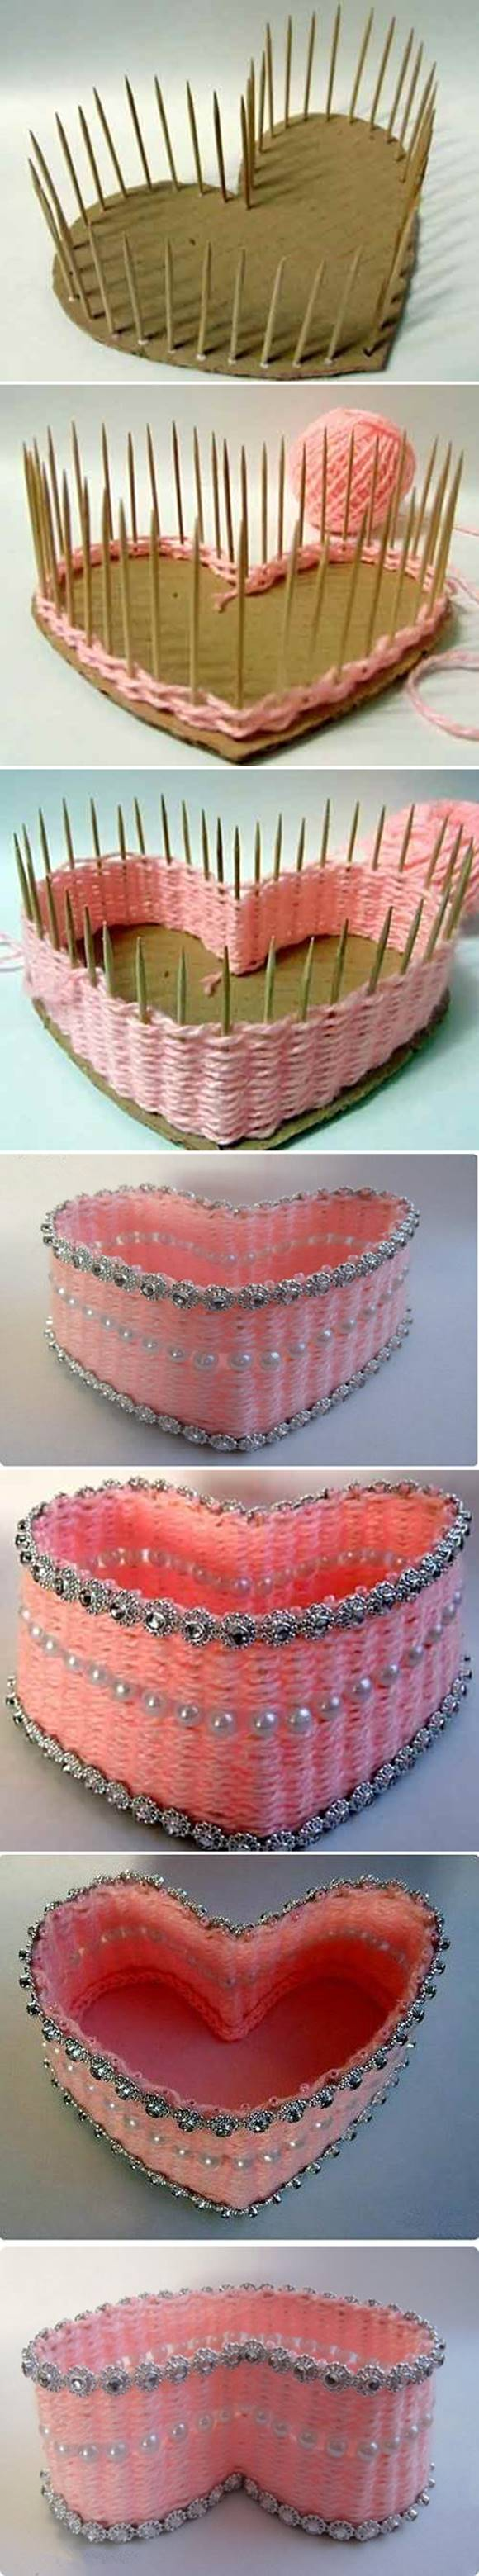 How To Make A Woven Yarn Basket : How to diy yarn woven heart shaped basket